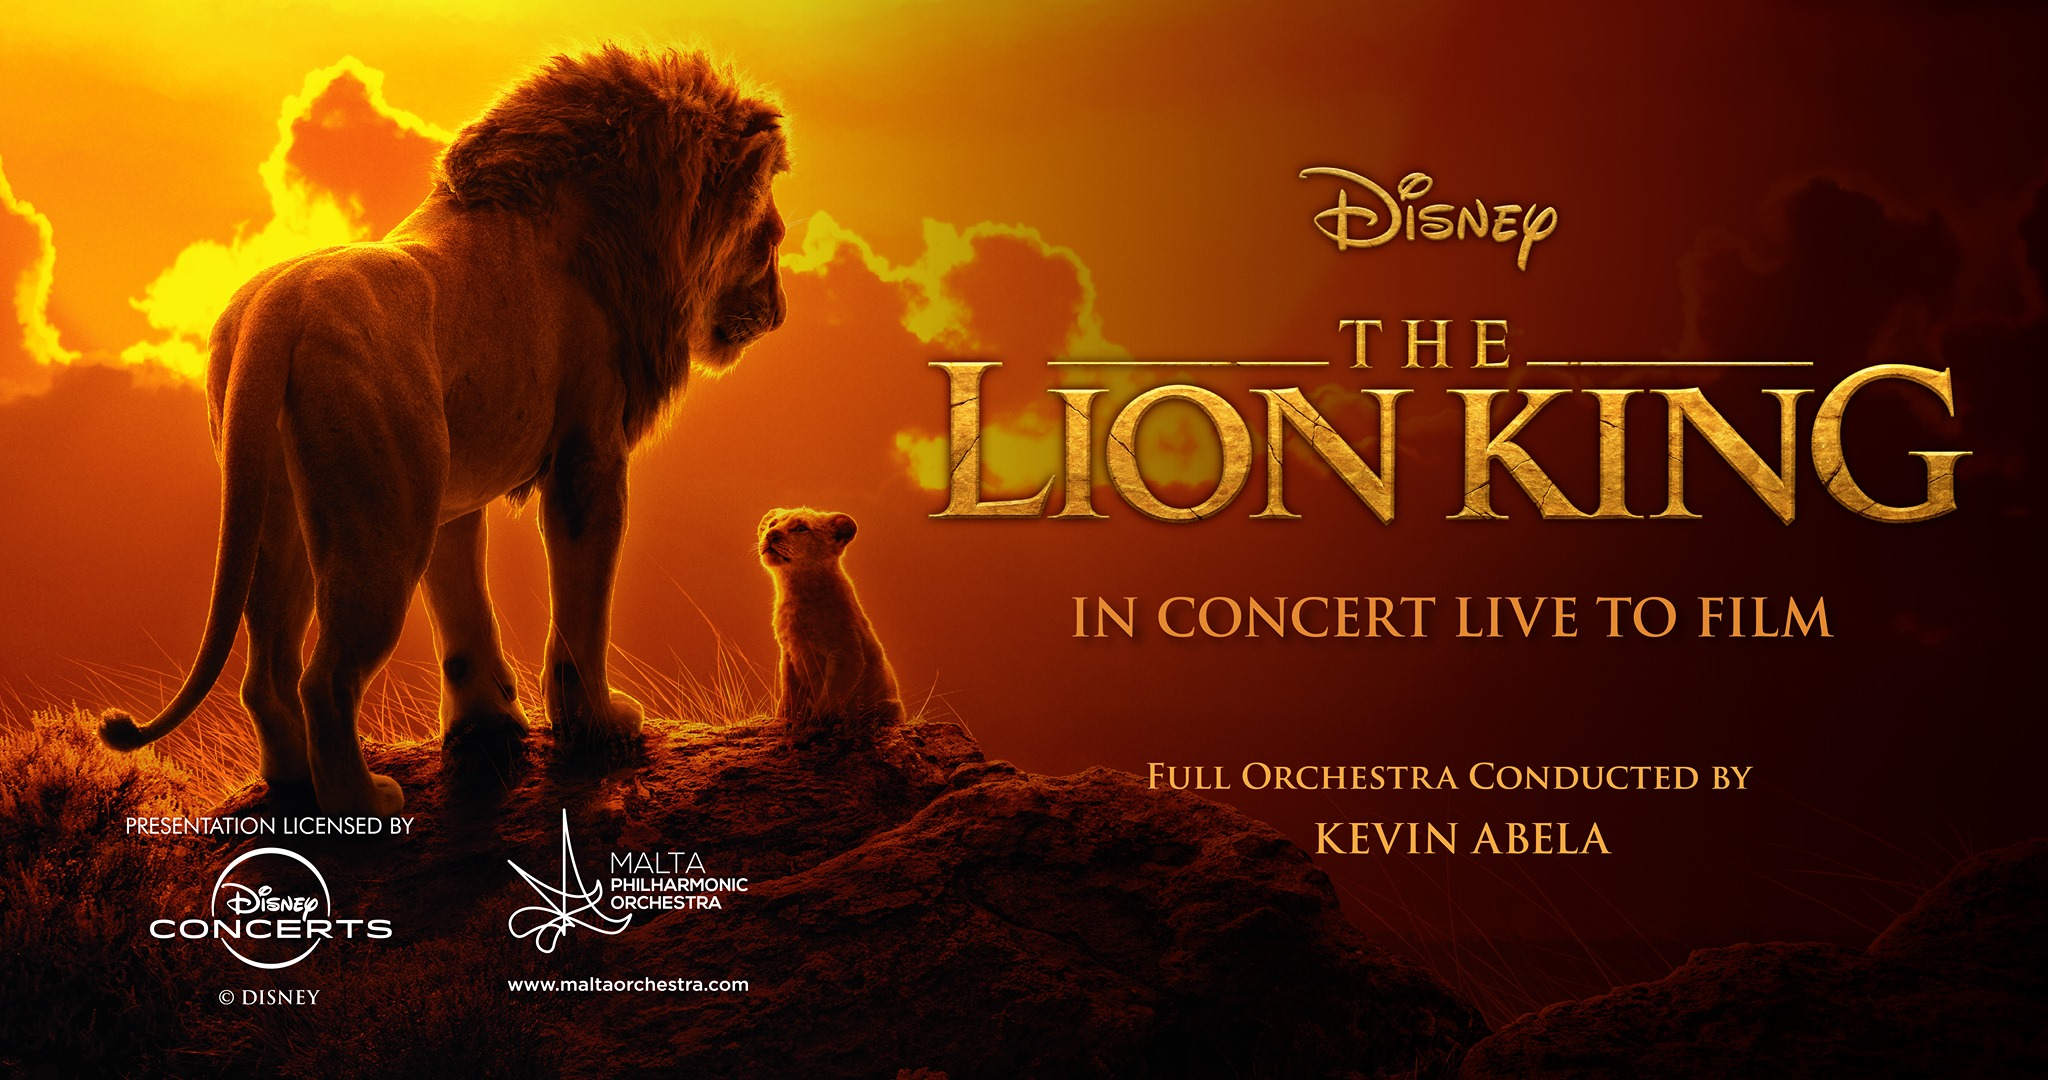 Disney: The Lion King In Concert Live to Film